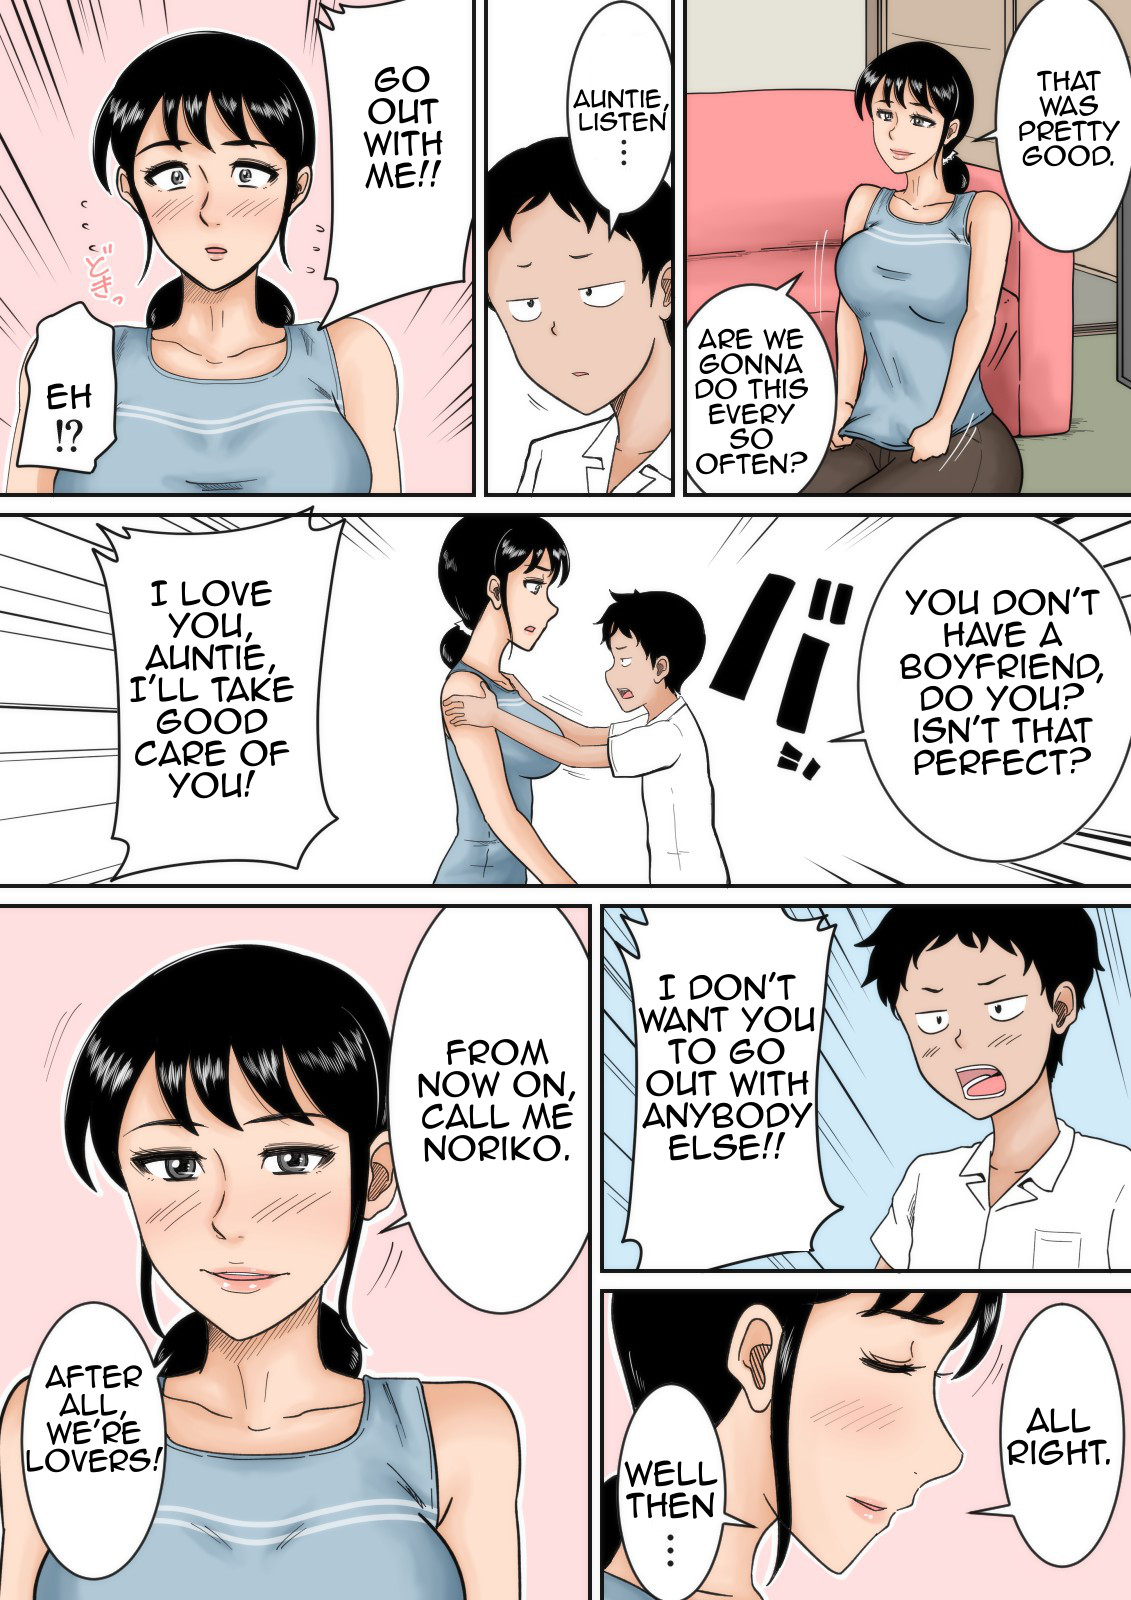 Aunt and Me- Hentai